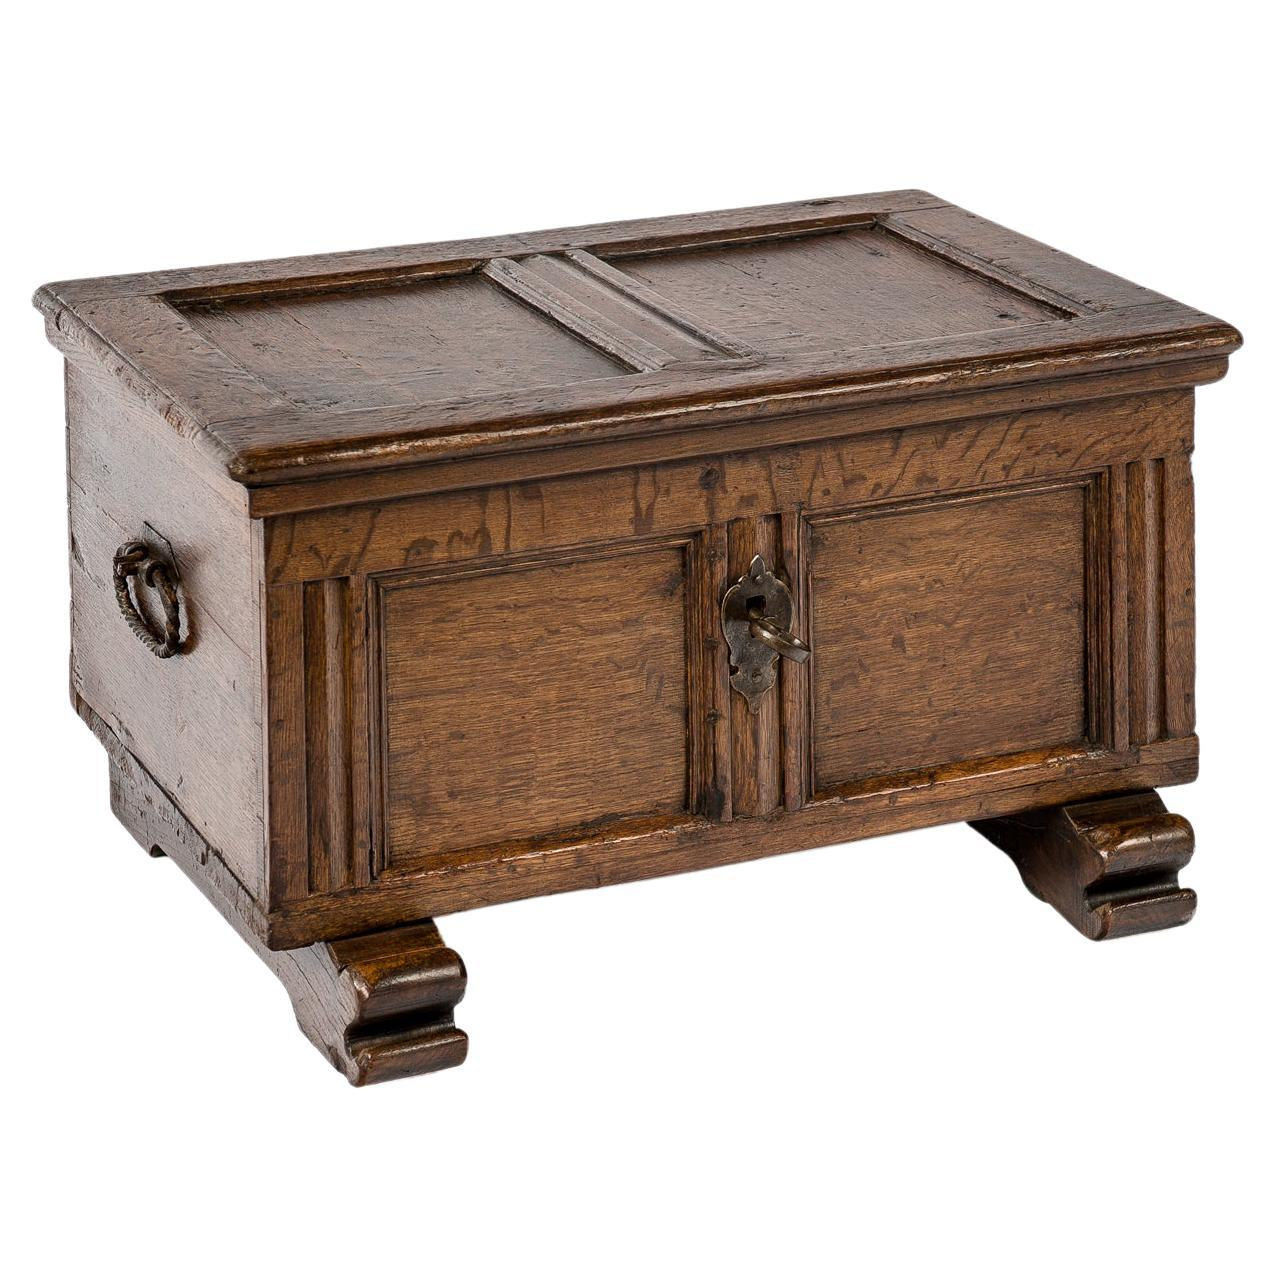 Small Antique Early 18th Century German Oak Paneled Trunk or Coffer